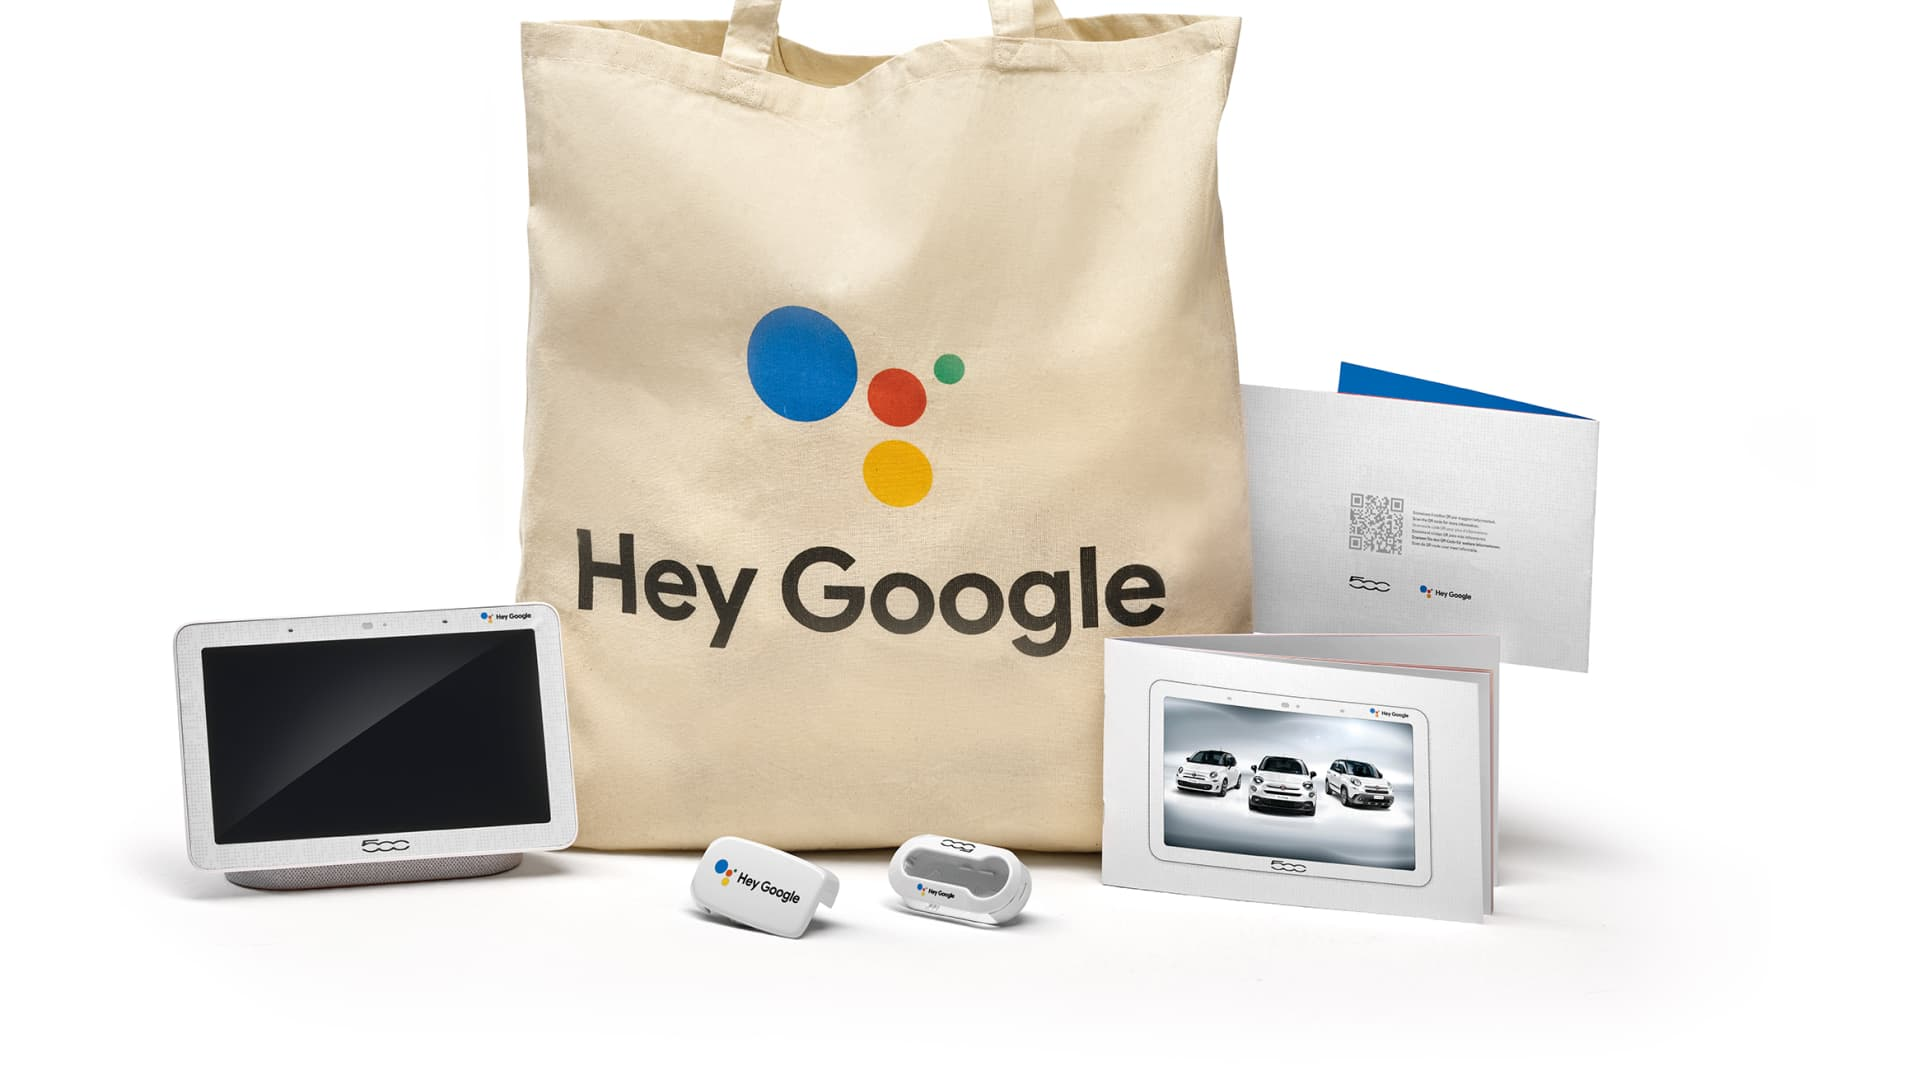 The cars come with Google-branded welcome kits.